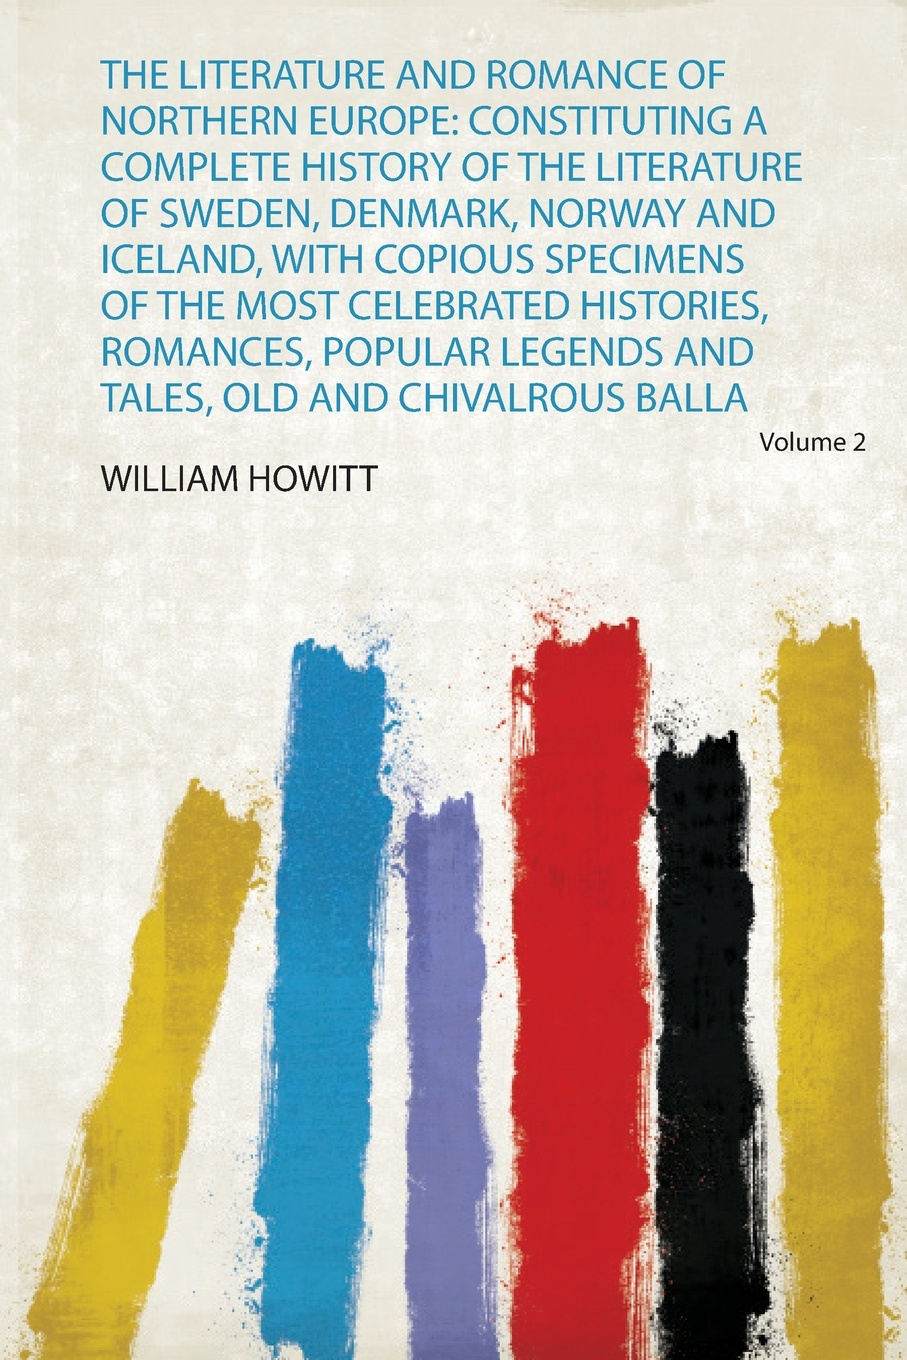 The Literature and Romance of Northern Europe. Constituting a Complete History of the Literature of Sweden, Denmark, Norway and Iceland, With Copious Specimens of the Most Celebrated Histories, Romances, Popular Legends and Tales, Old and Chivalro... коллектив авторов tales from the german comprising specimens from the most celebrated authors